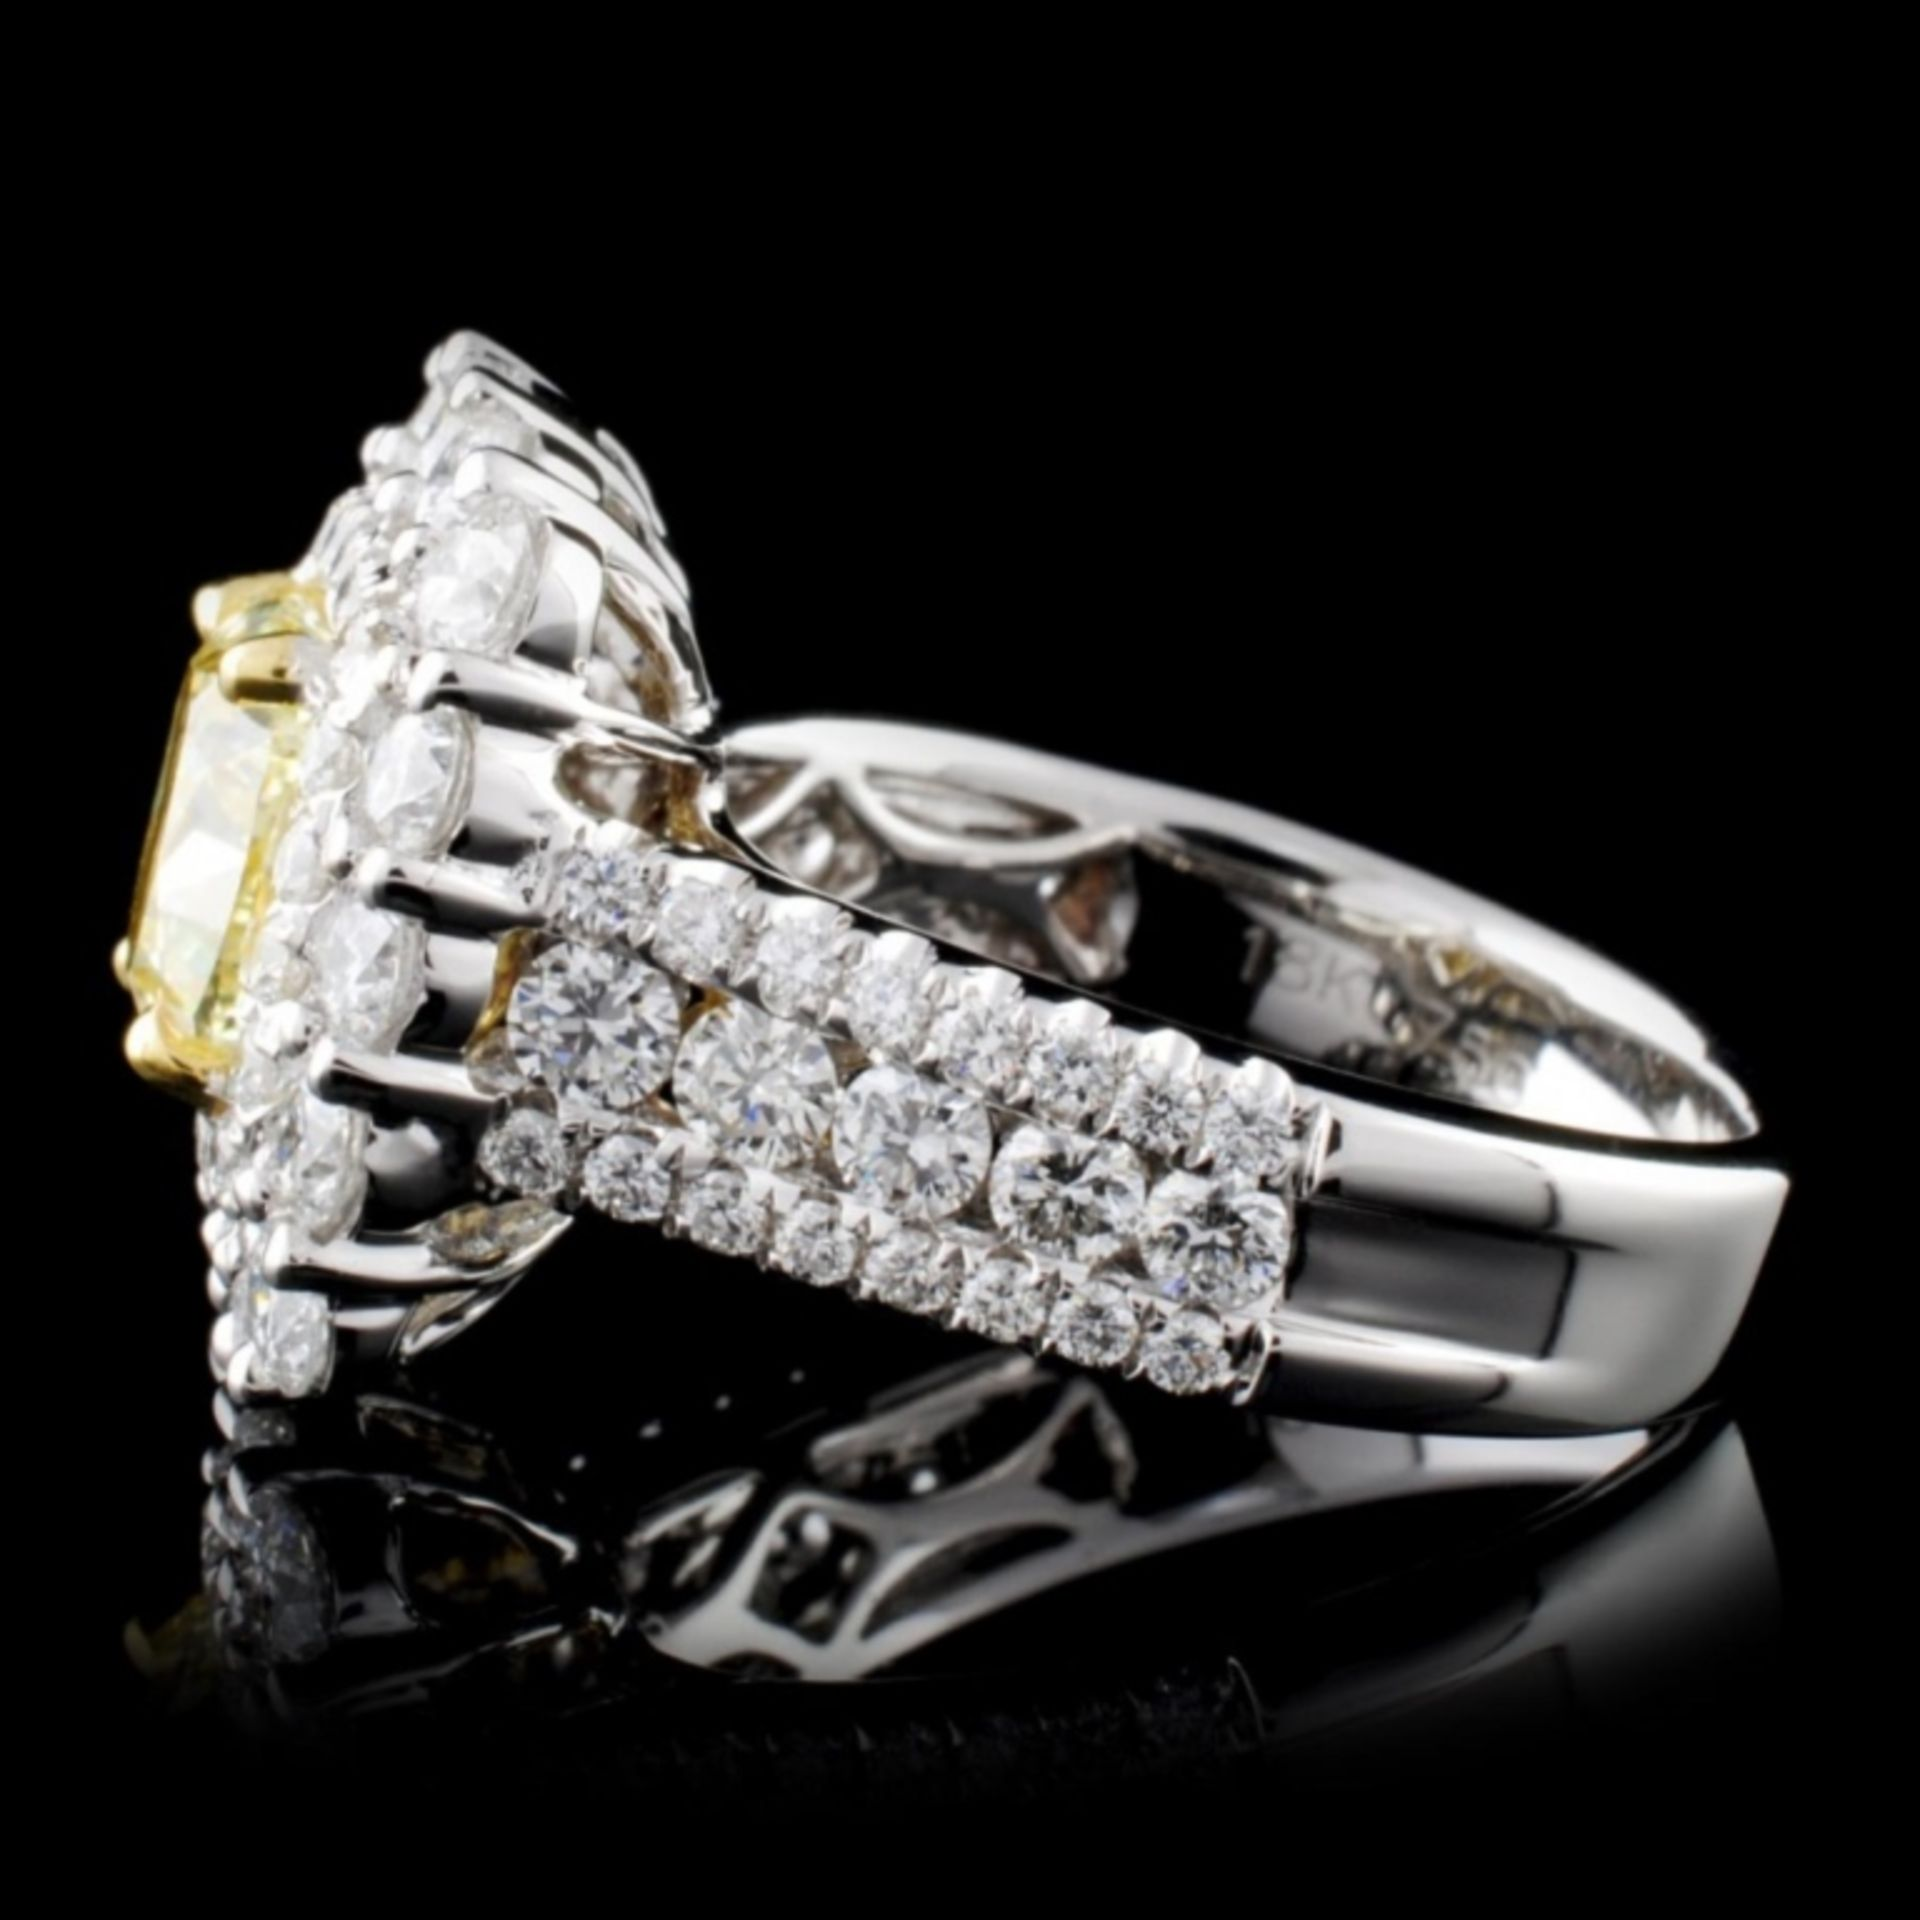 18K White Gold 3.92ctw Fancy Color Diamond Ring - Image 3 of 4